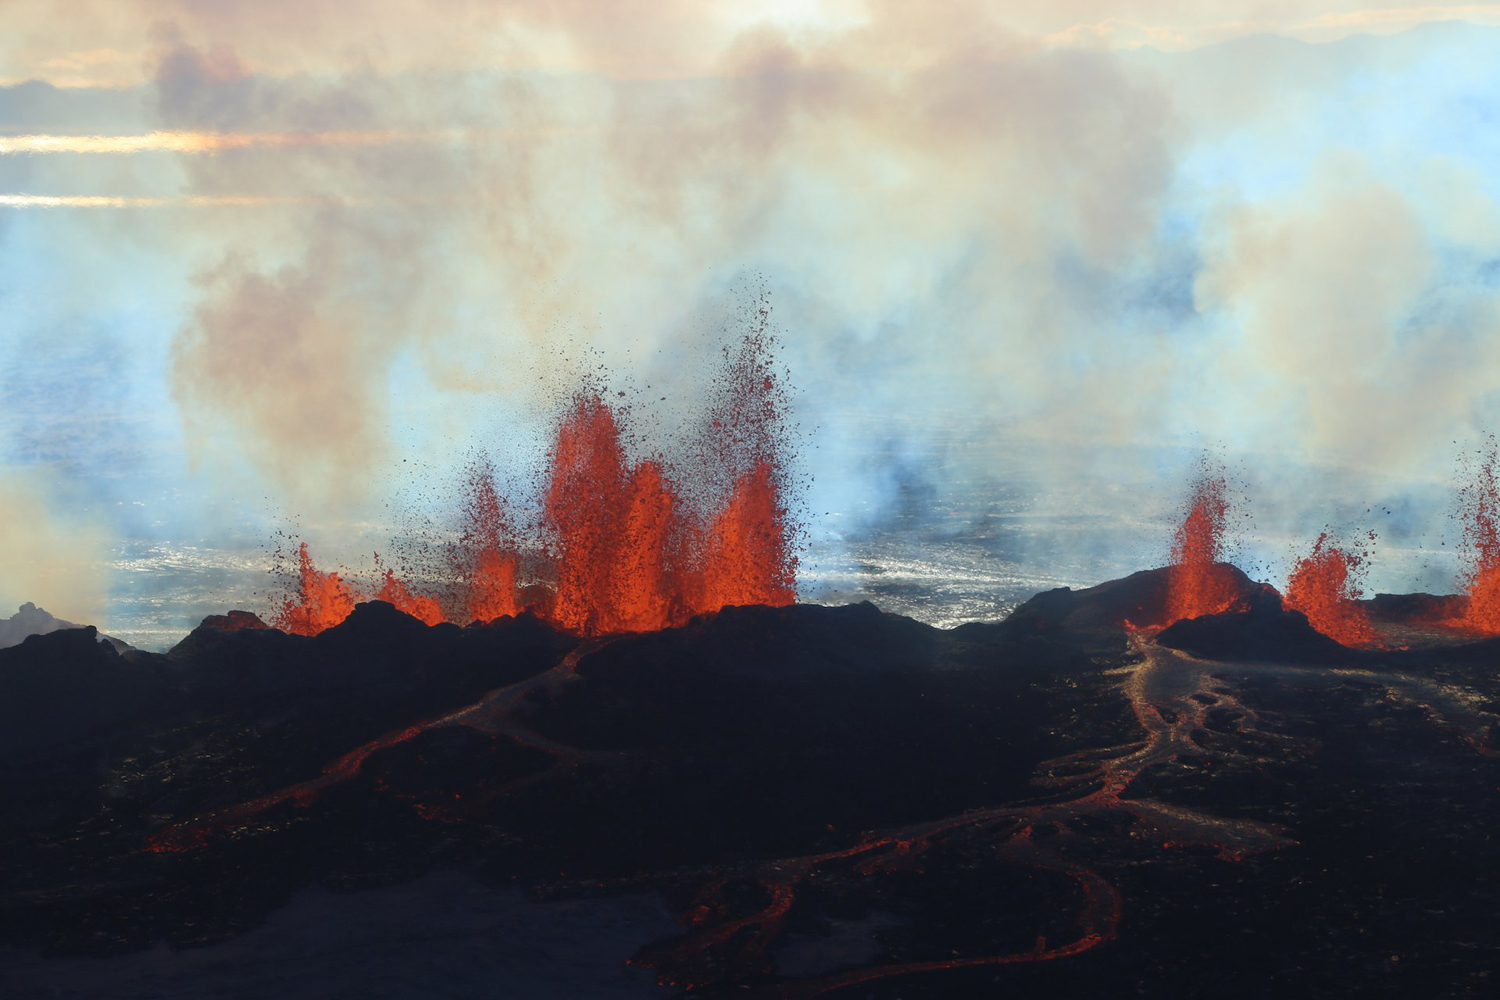 Sept. 2, 2014. In this aerial view, fountains of lava, up to 60 meters high, spurt from a fissure in the ground on the north side of the Bardarbunga volcano in Iceland.